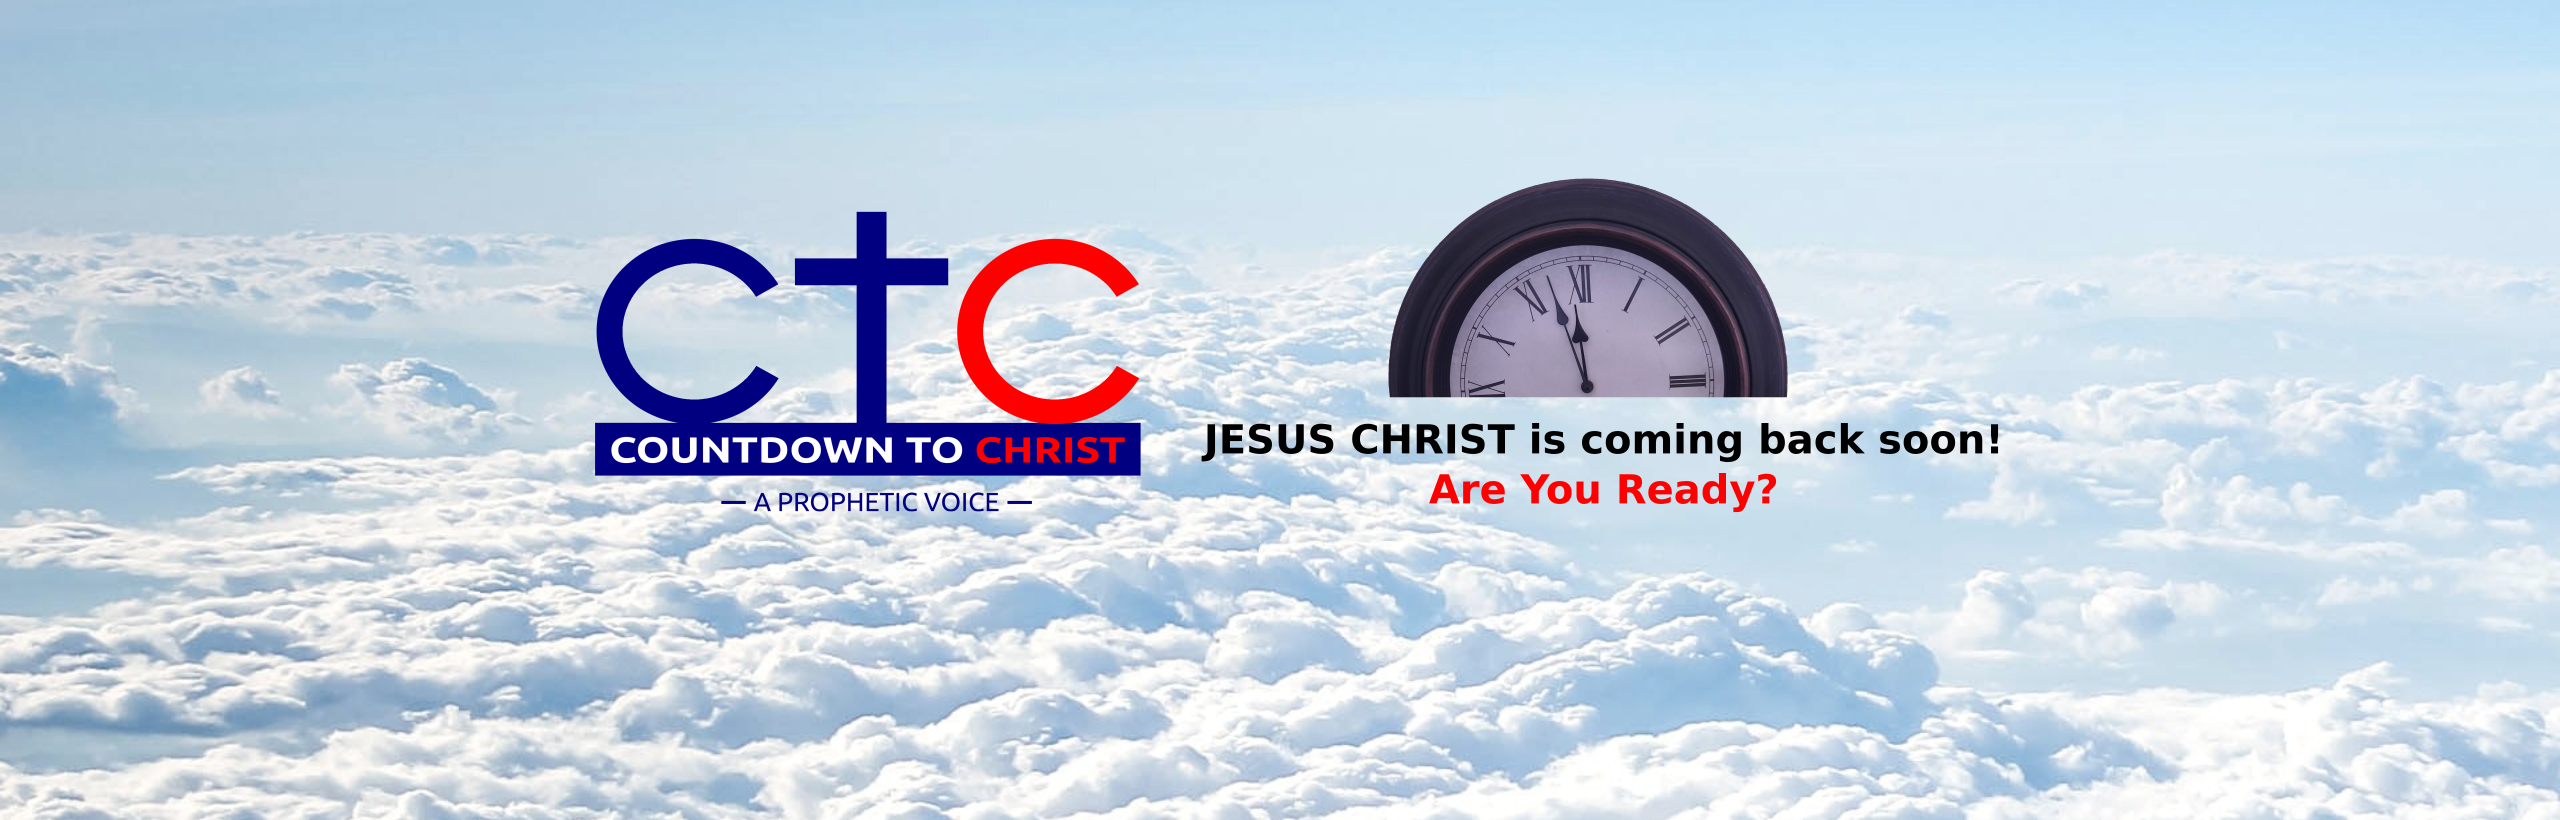 Header Image - Countdown to Christ Ministries